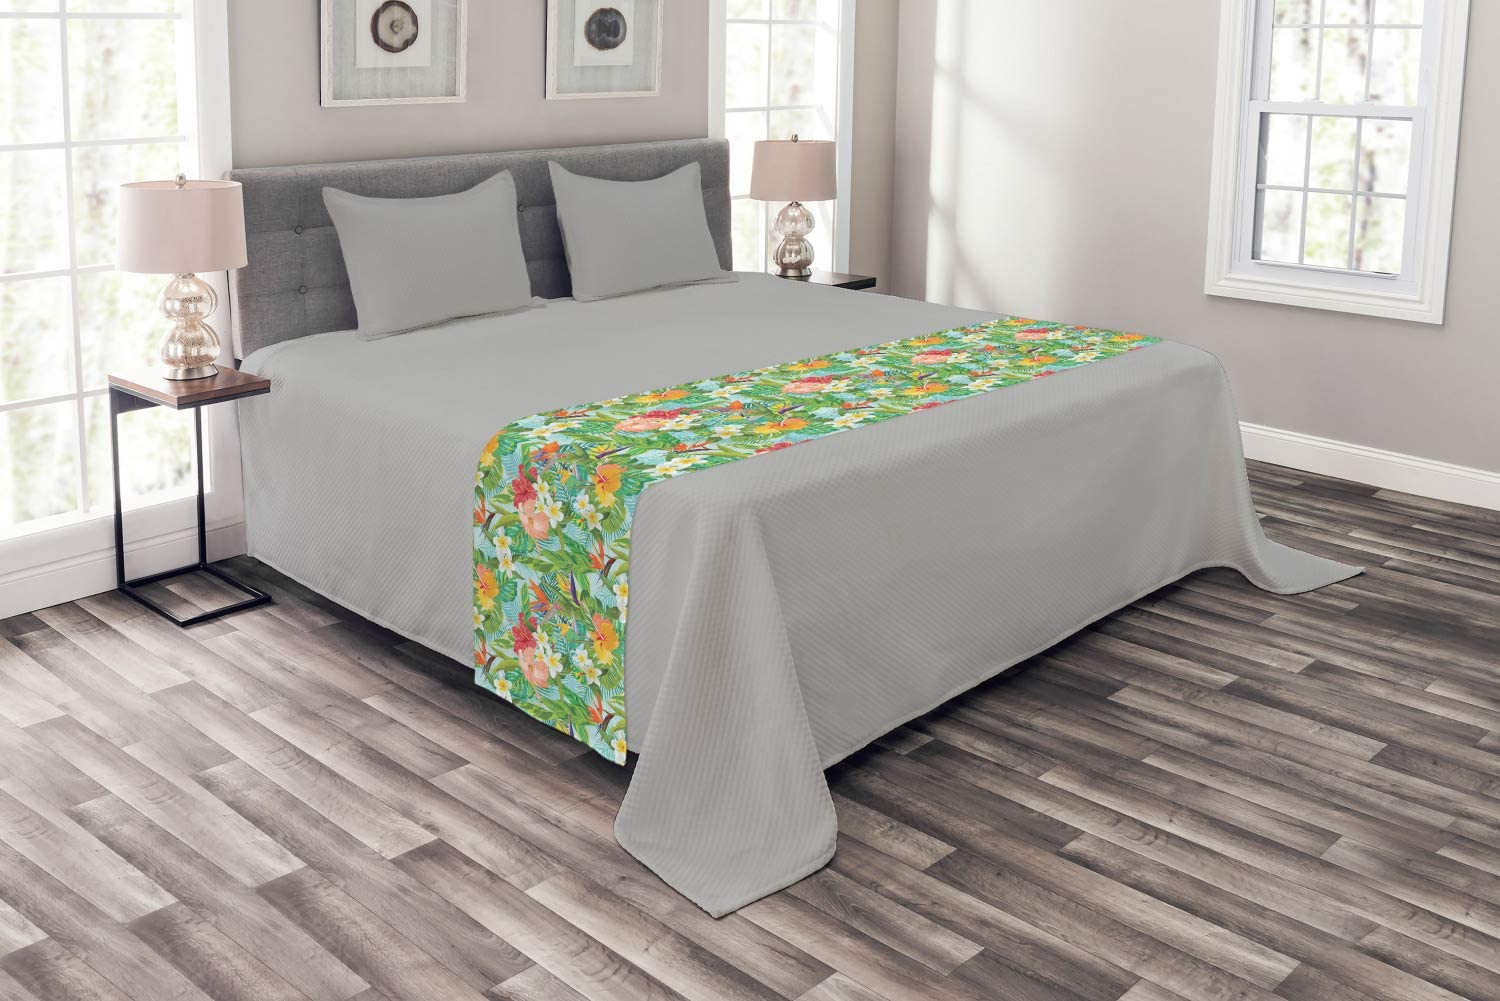 Vintage Cartoon Style Image of Hawaiian Flowers Crepe Gingers Fern Green Baby Blue Lunarable Leaf Bed Runner Decorative Accent Bedding Scarf for Hotels Homes and Guestrooms